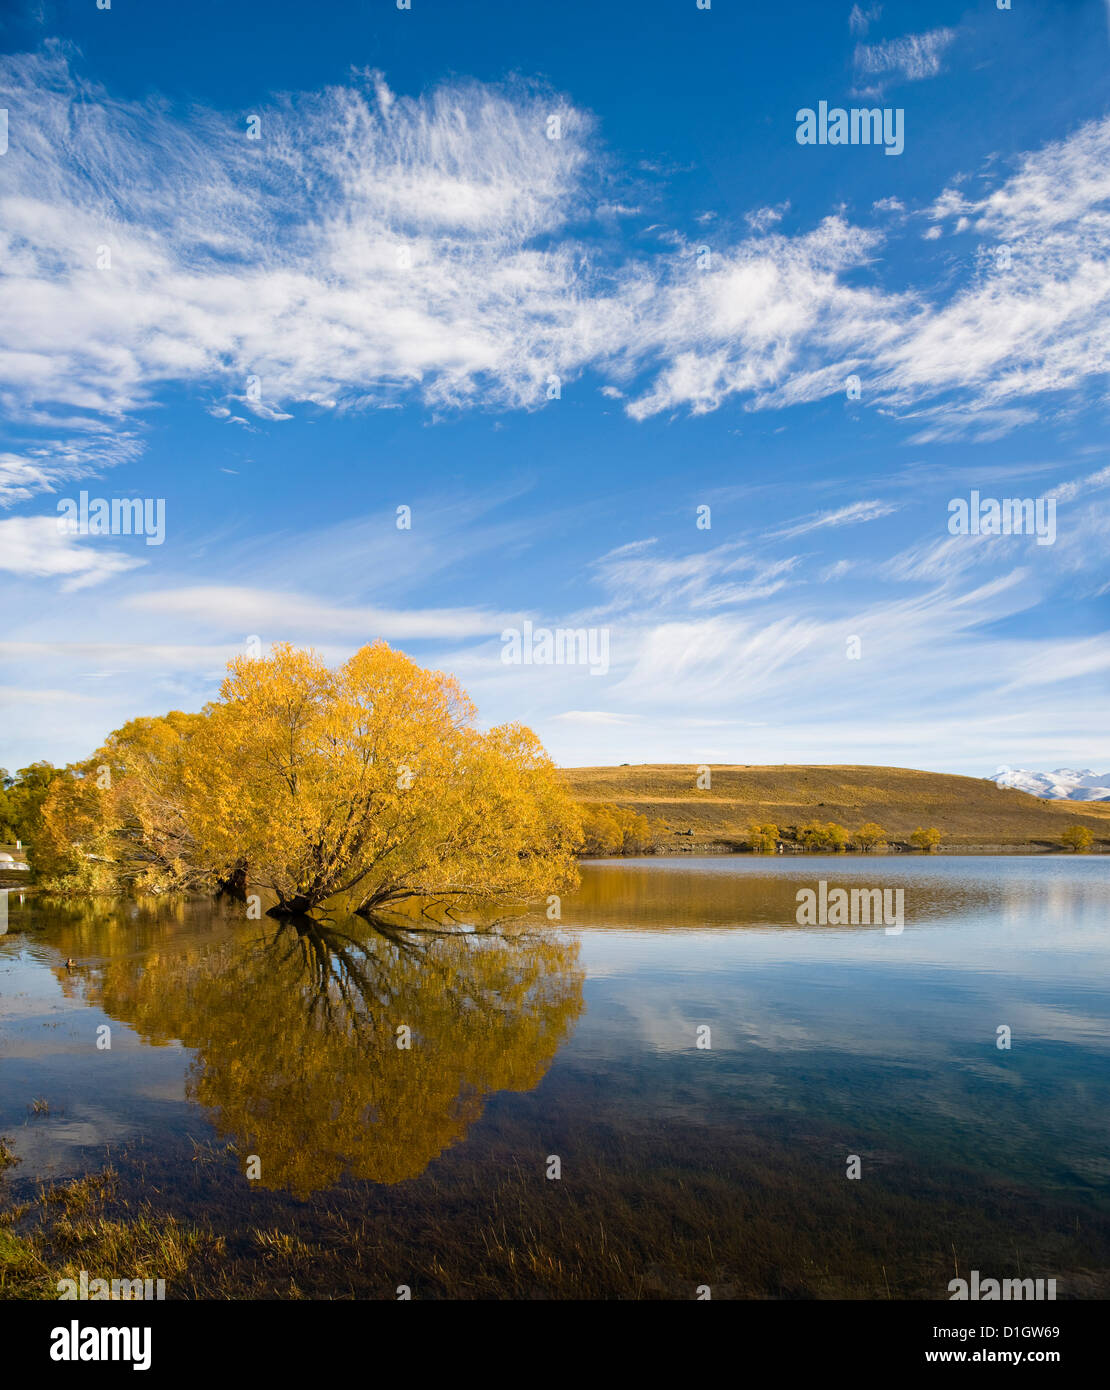 Golden autumn tree reflection in still morning water, Lake Alexandrina, Southern Lakes, Otago Region, South Island, - Stock Image